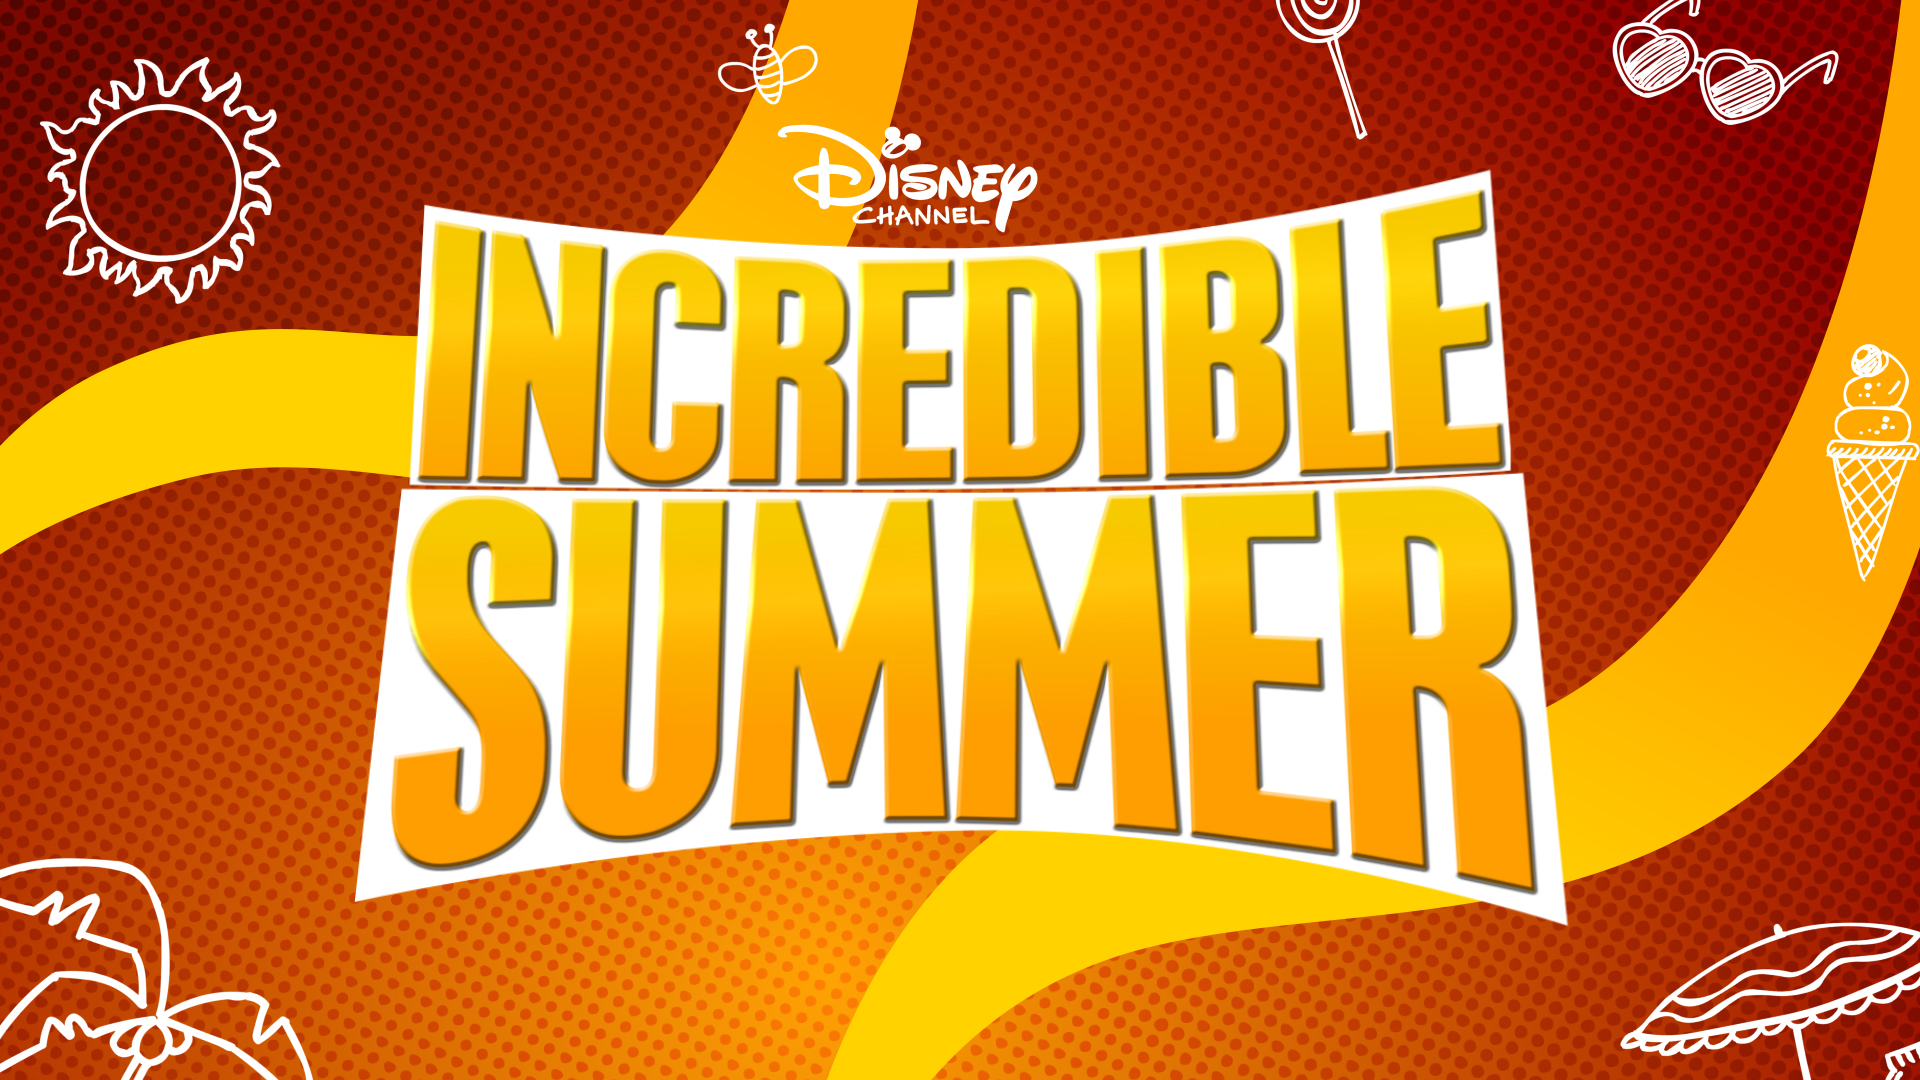 disney channel incredible summer